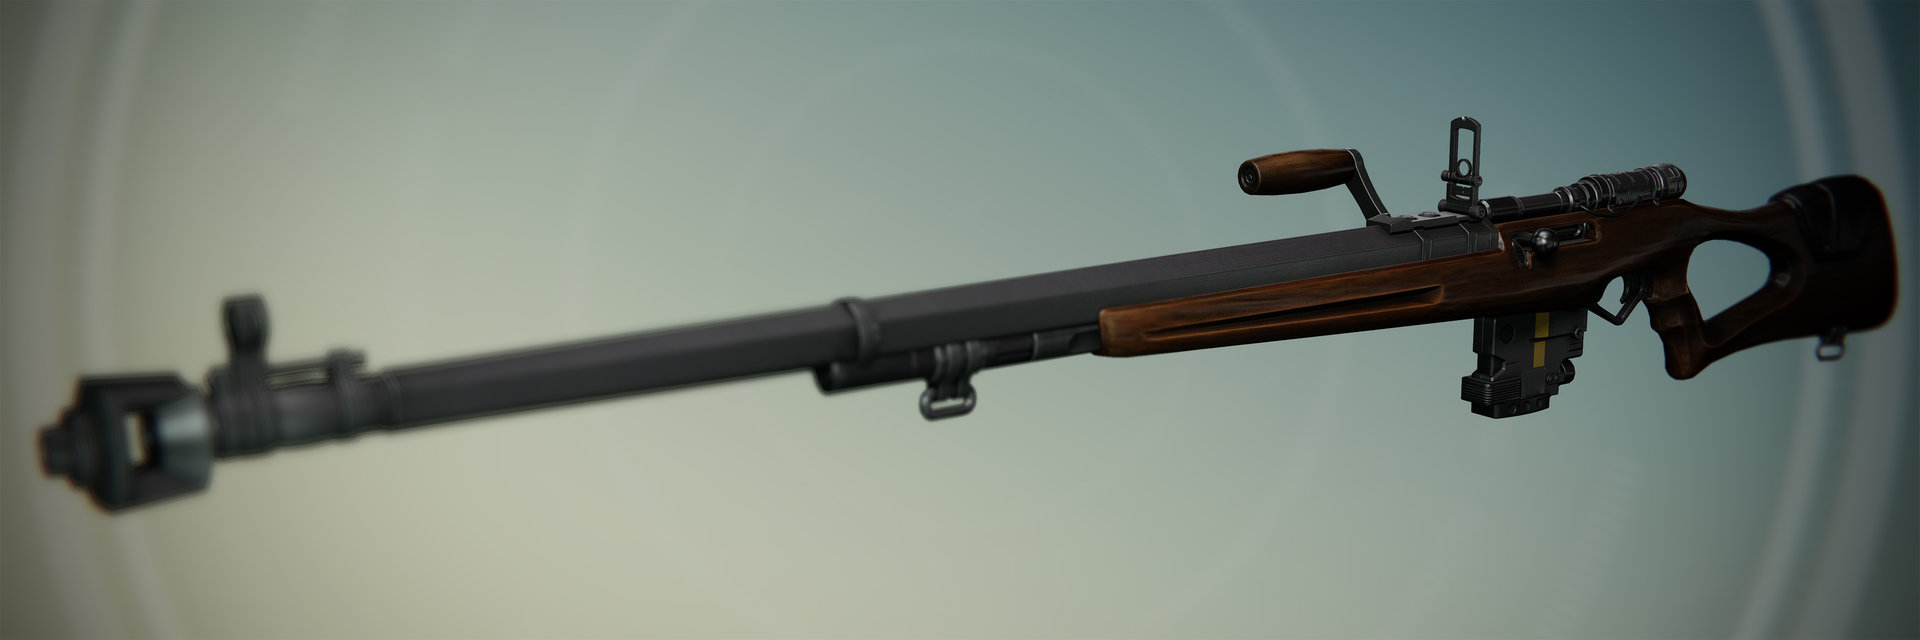 destiny_david-stammel-sniper-rifle-exotic-no-land-beyond-inventory